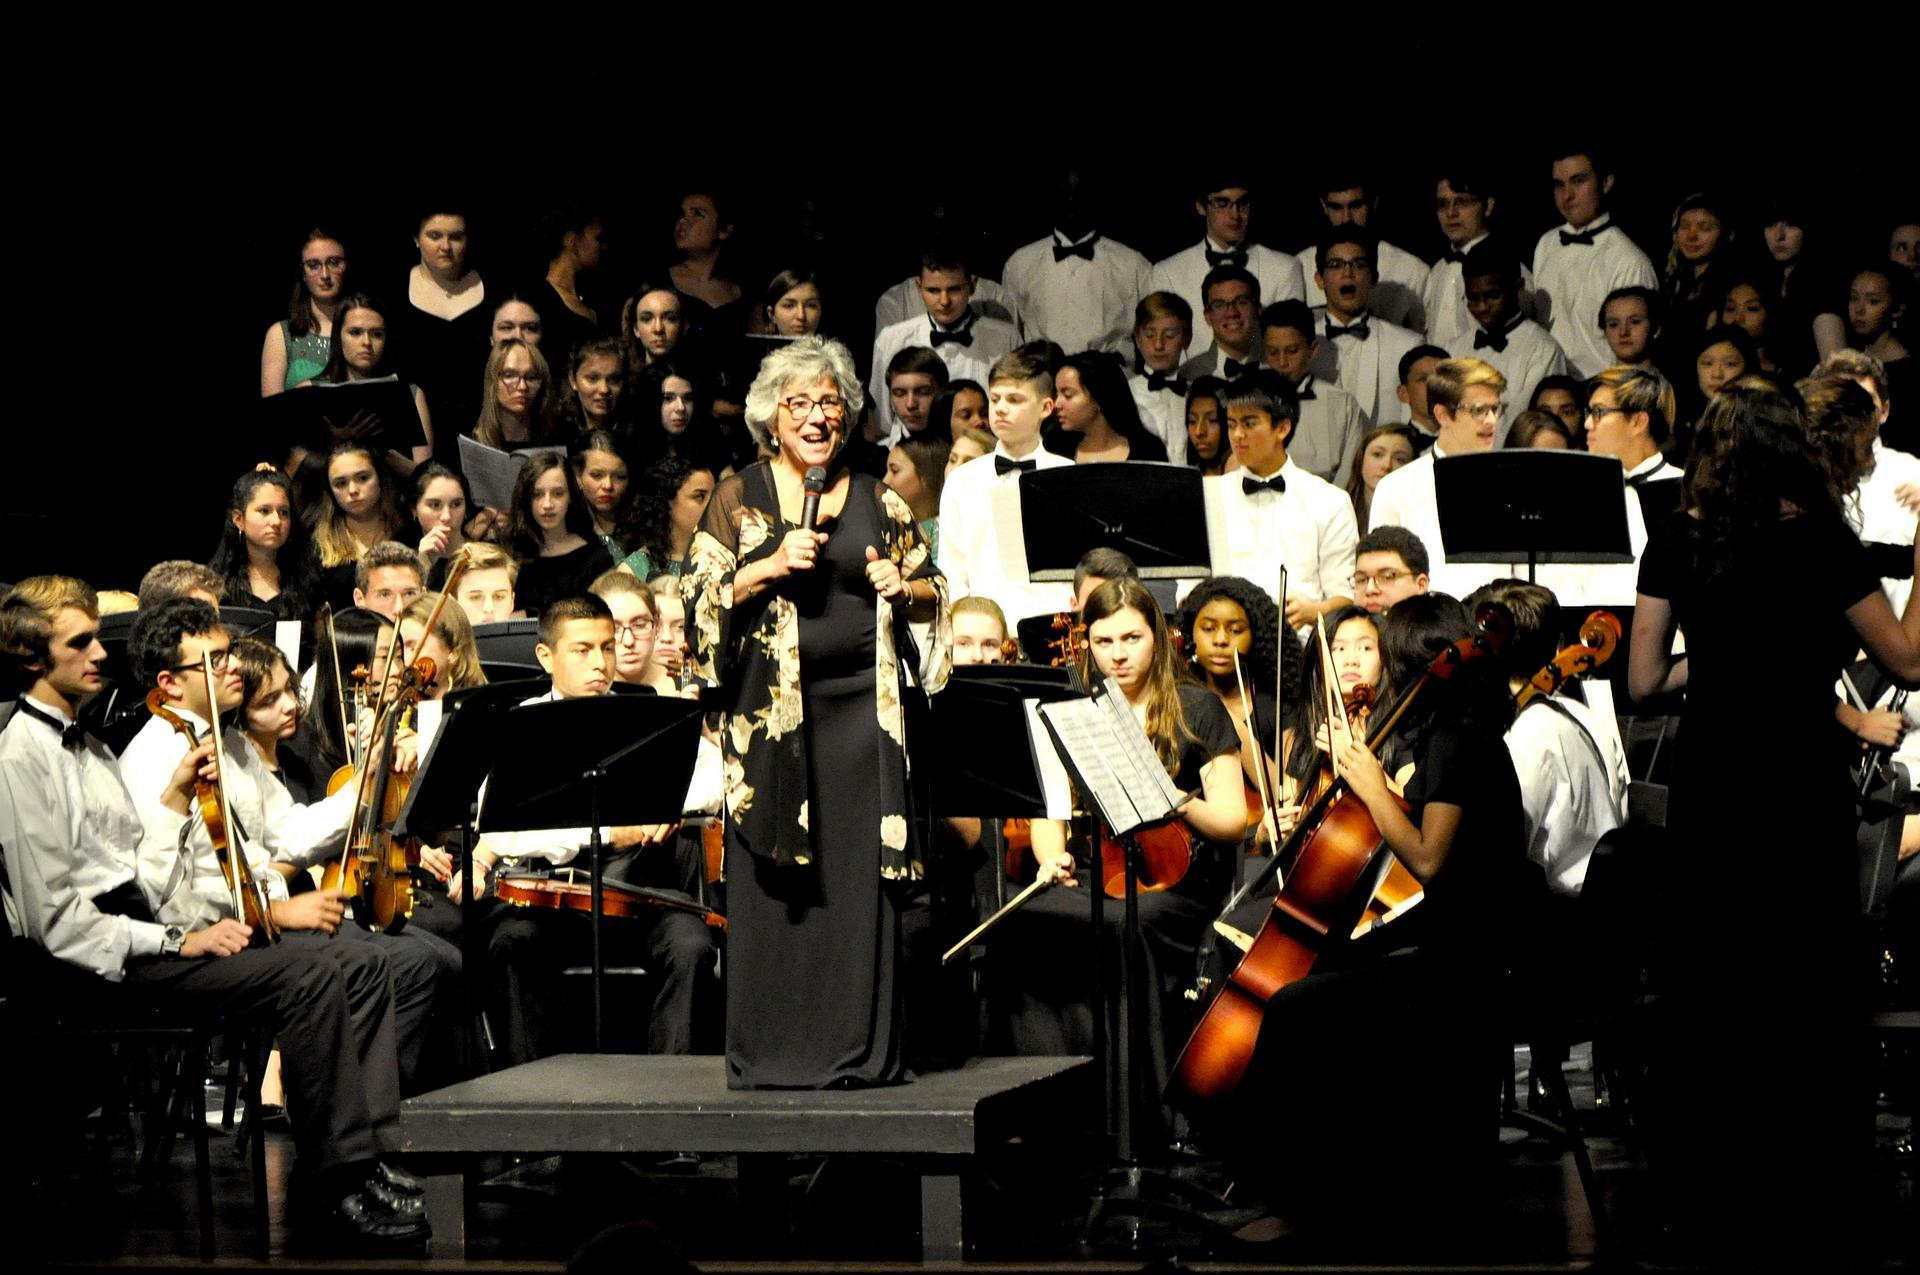 Kelly Kingett and the JP orchestra at the St. Cecilia concert